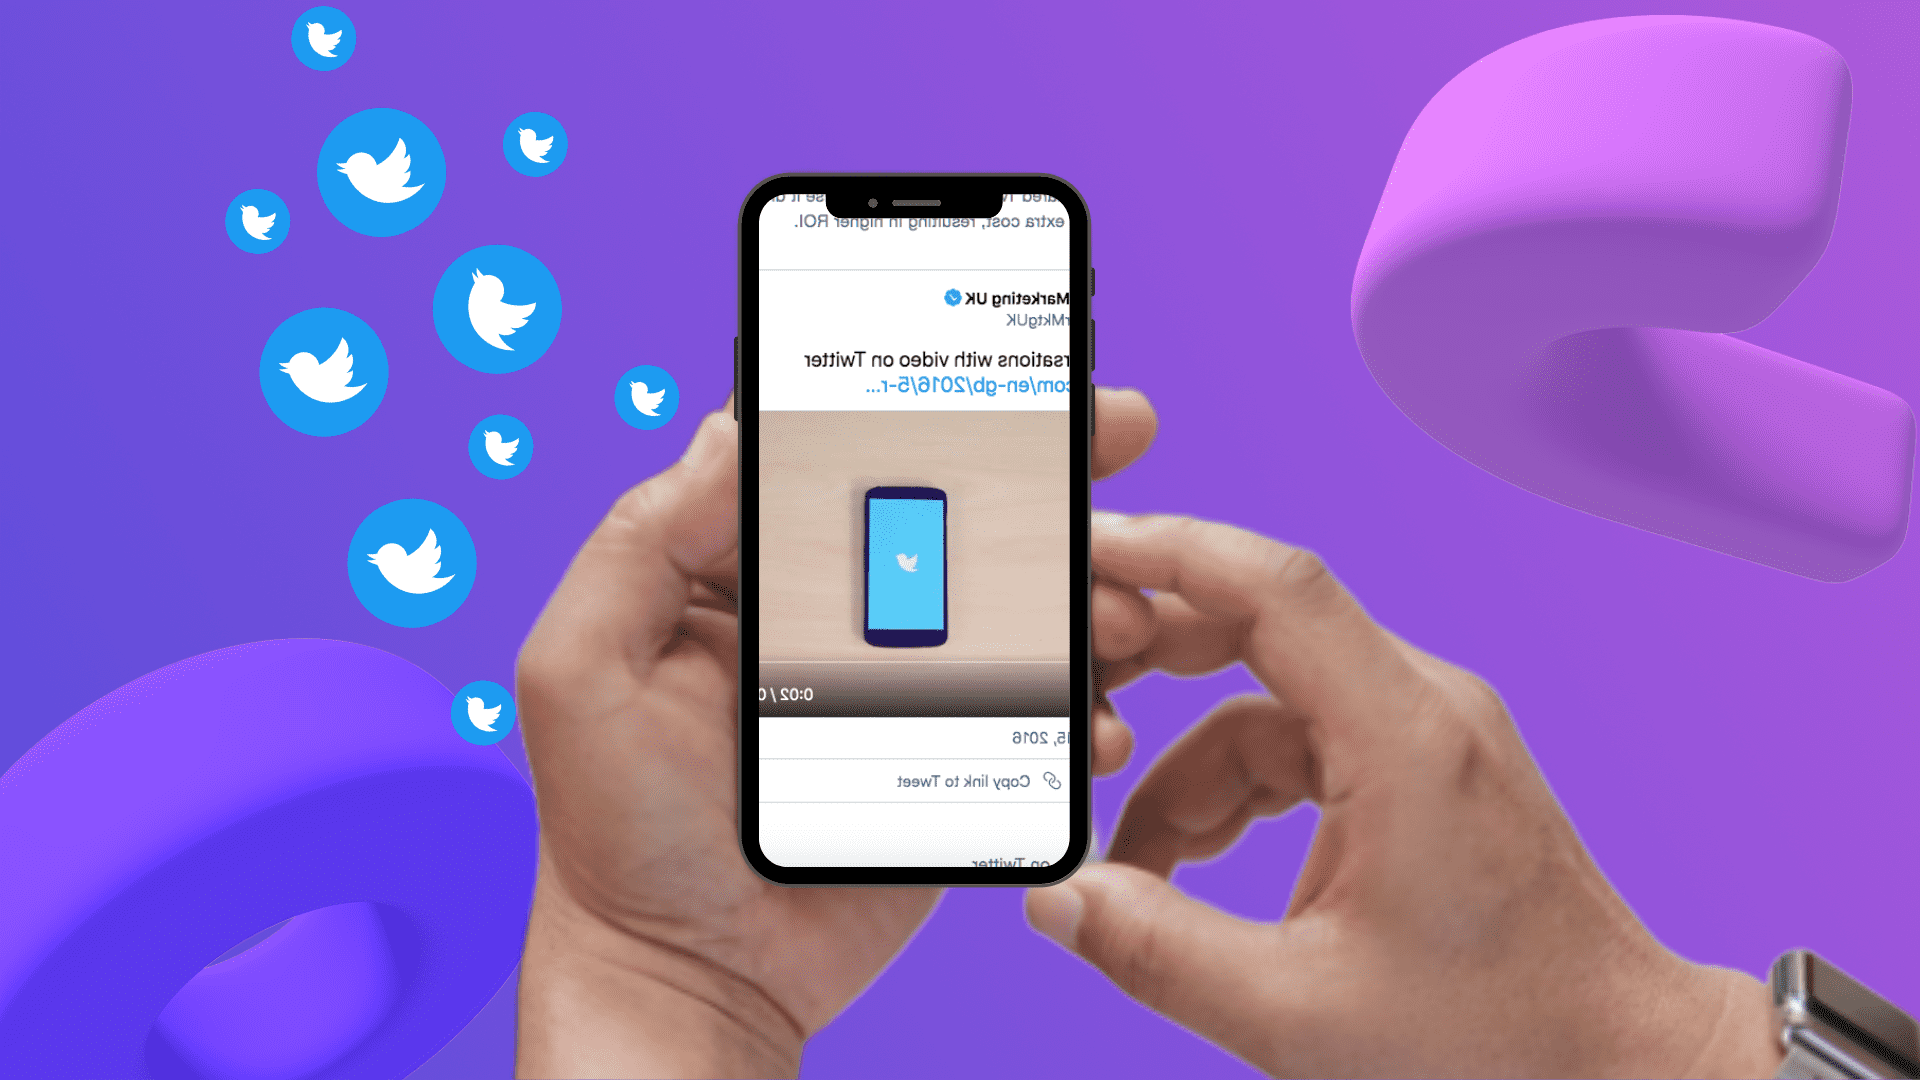 How to post video to twitter